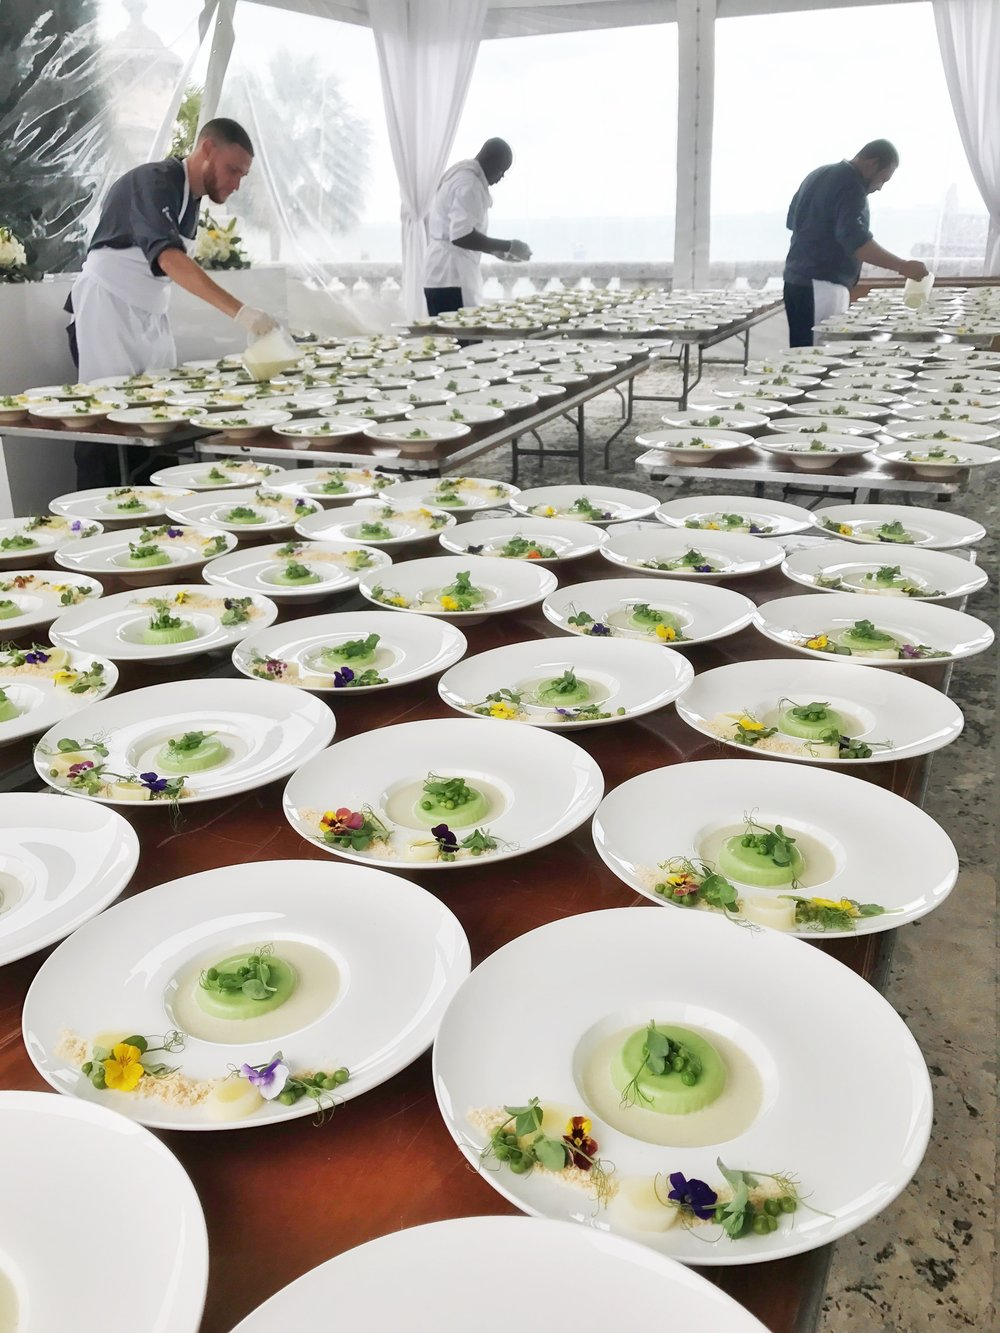 - Behind the scenes: Team T.I. prepping 200 vegan leek & potato soups for a charitable luncheon.